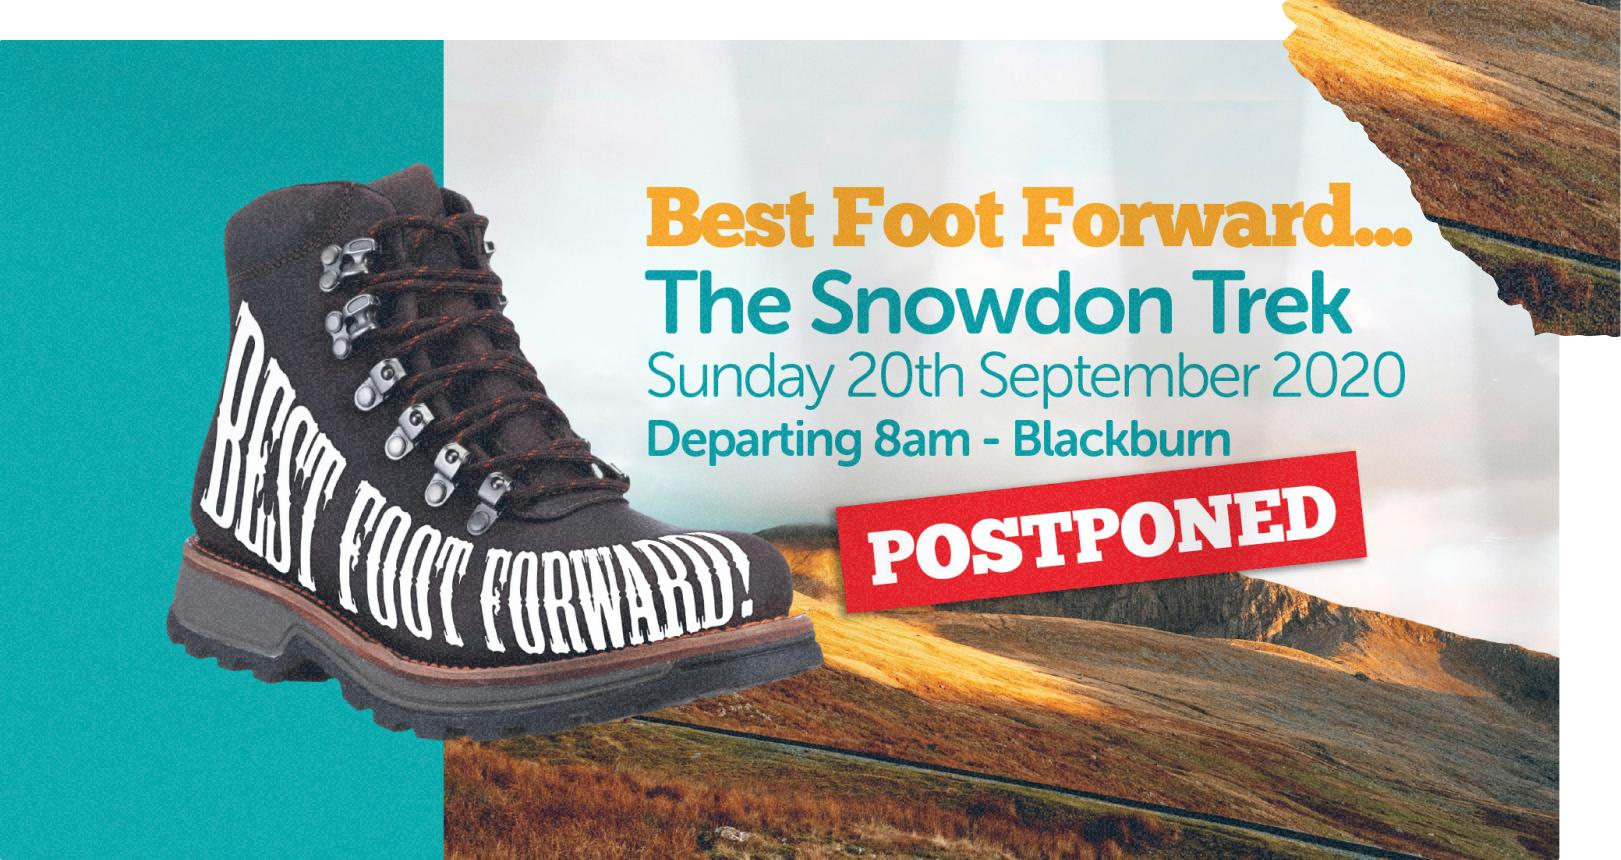 Banner image of Snowdon Trek Event with a hiking boot